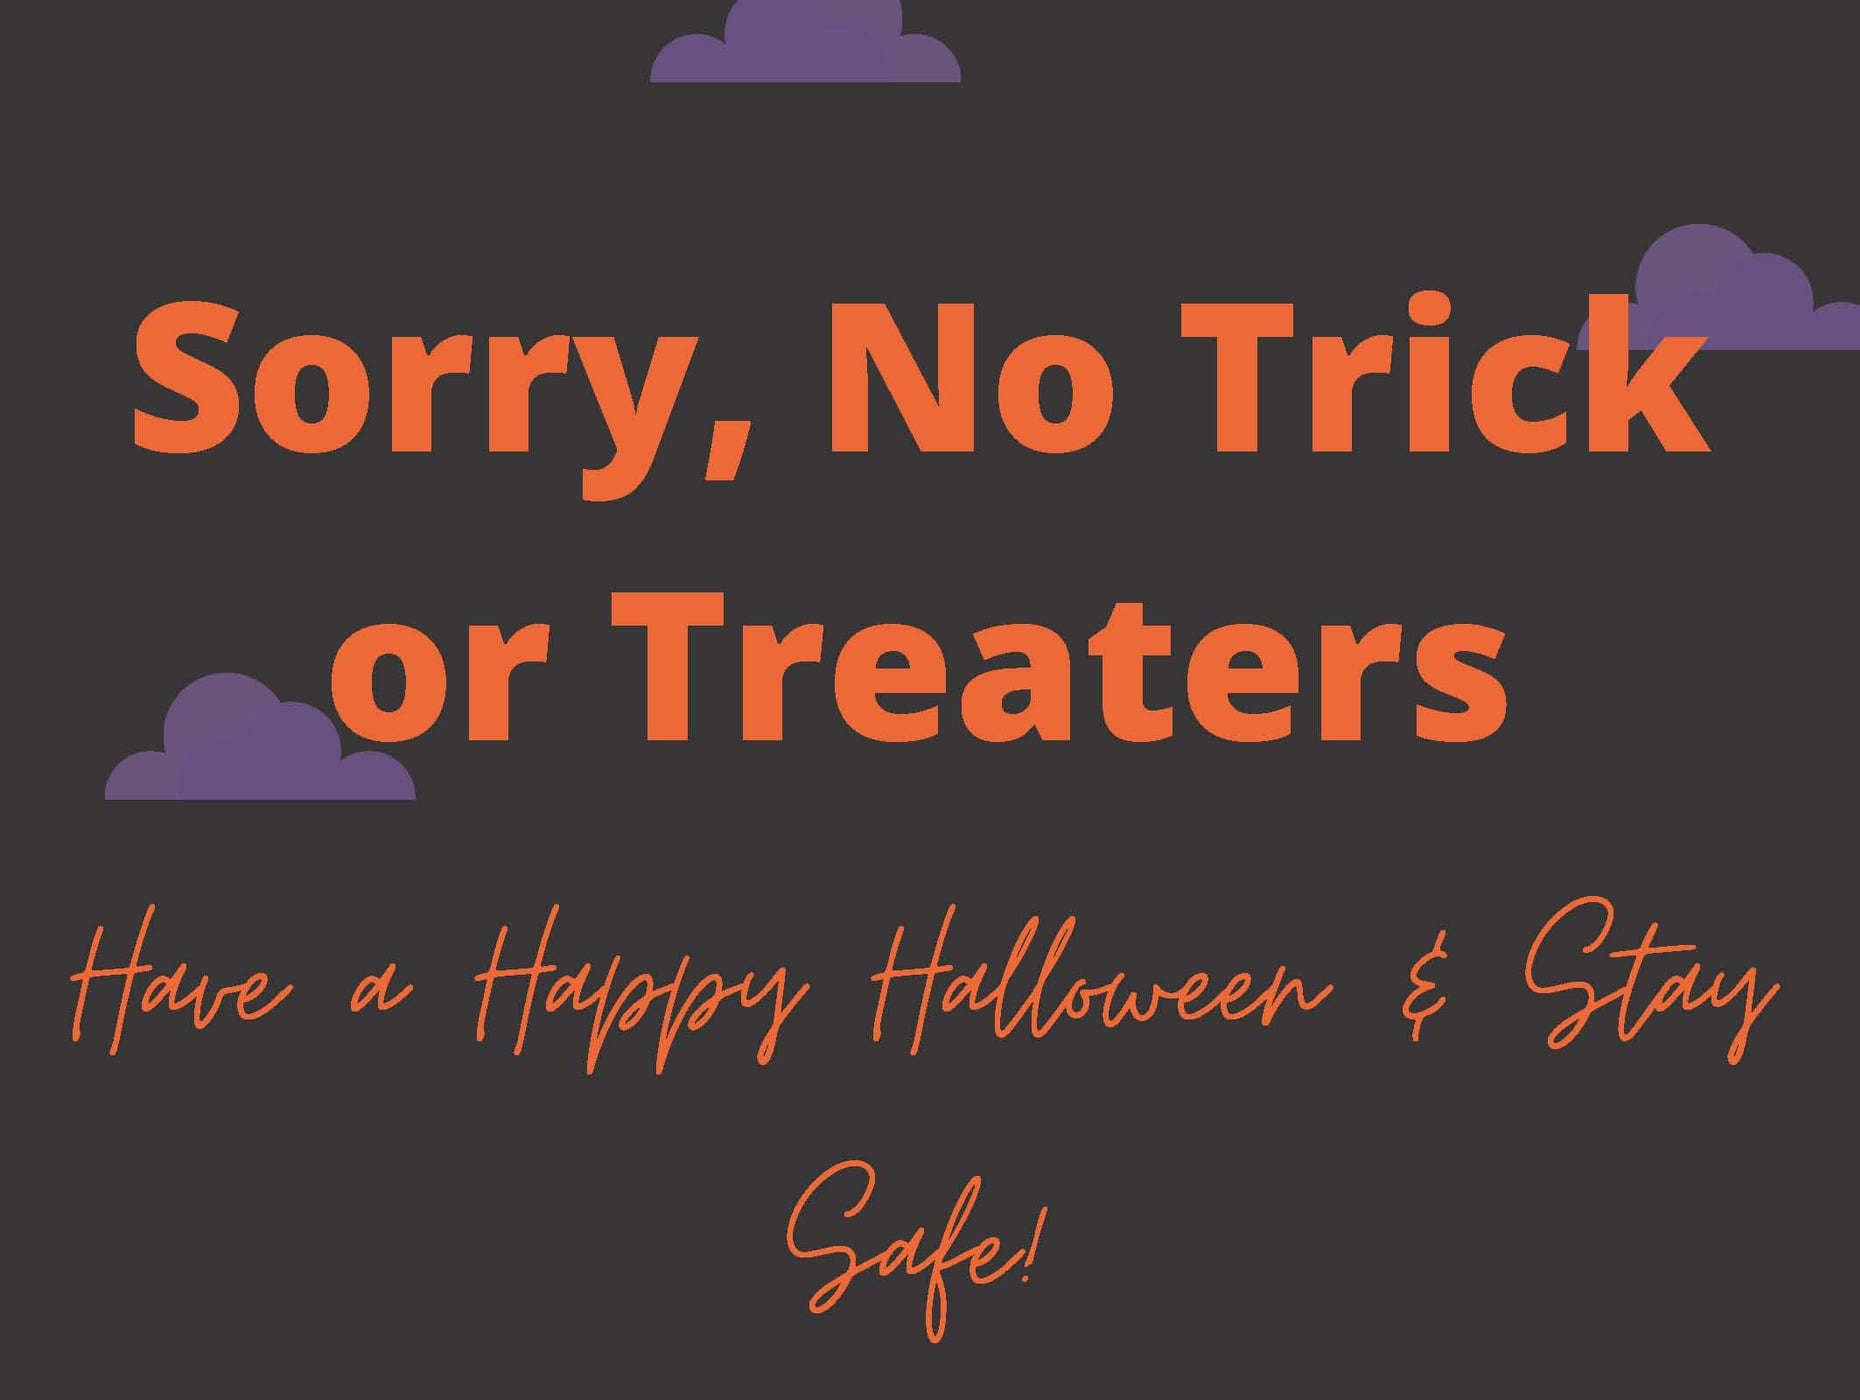 halloweendoorsign.jpg